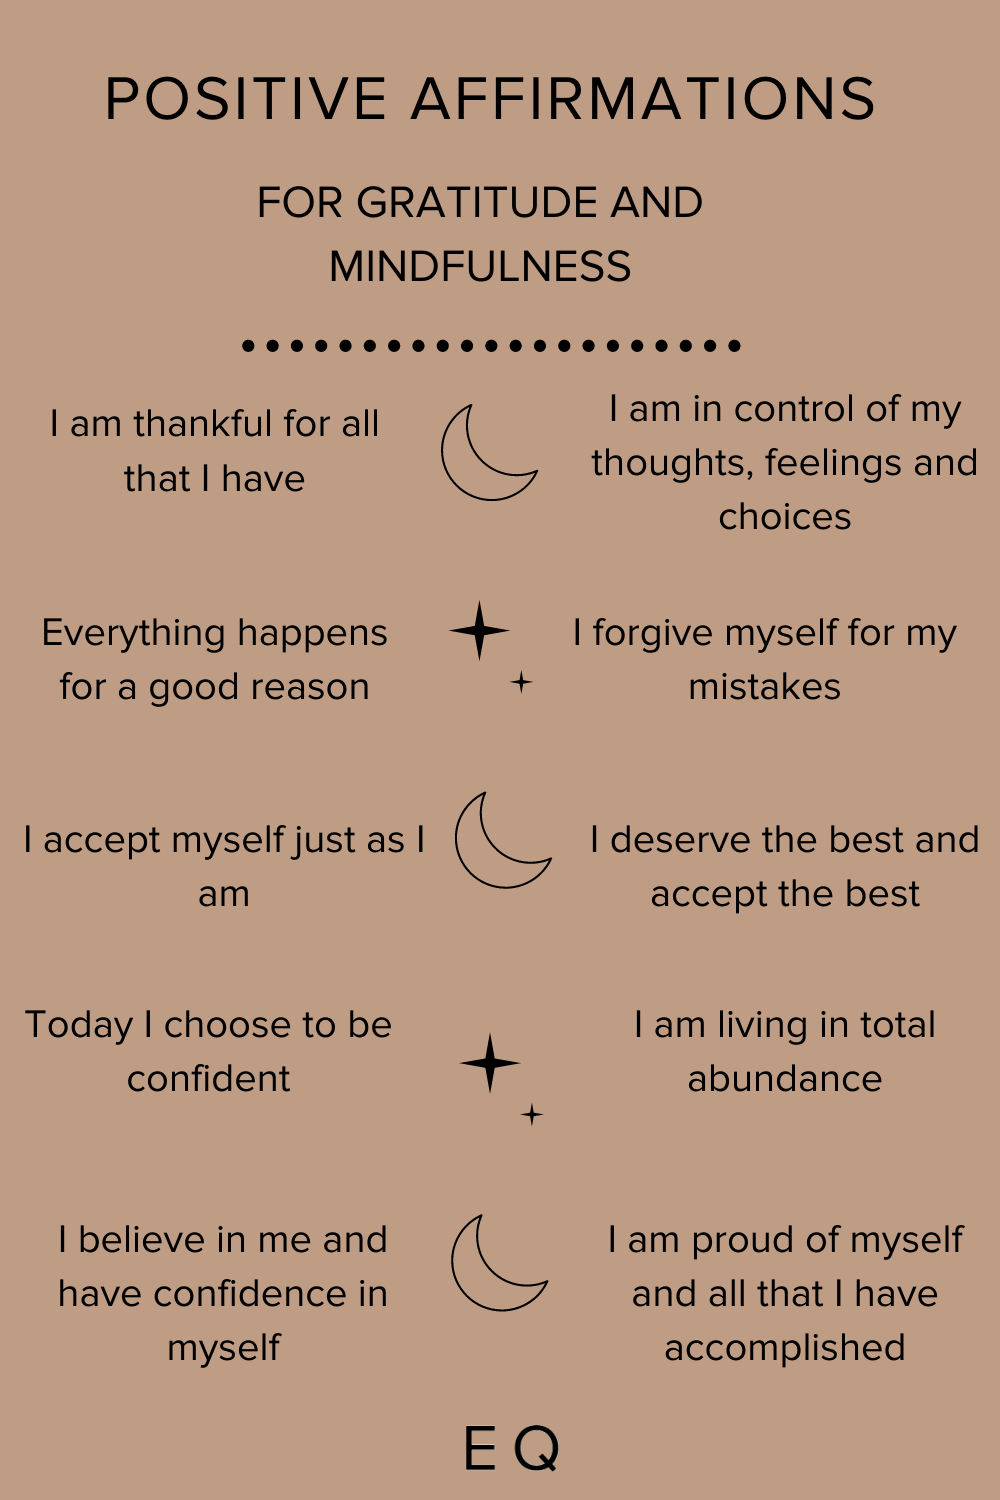 Positive Affirmations for Gratitude and Mindfulness